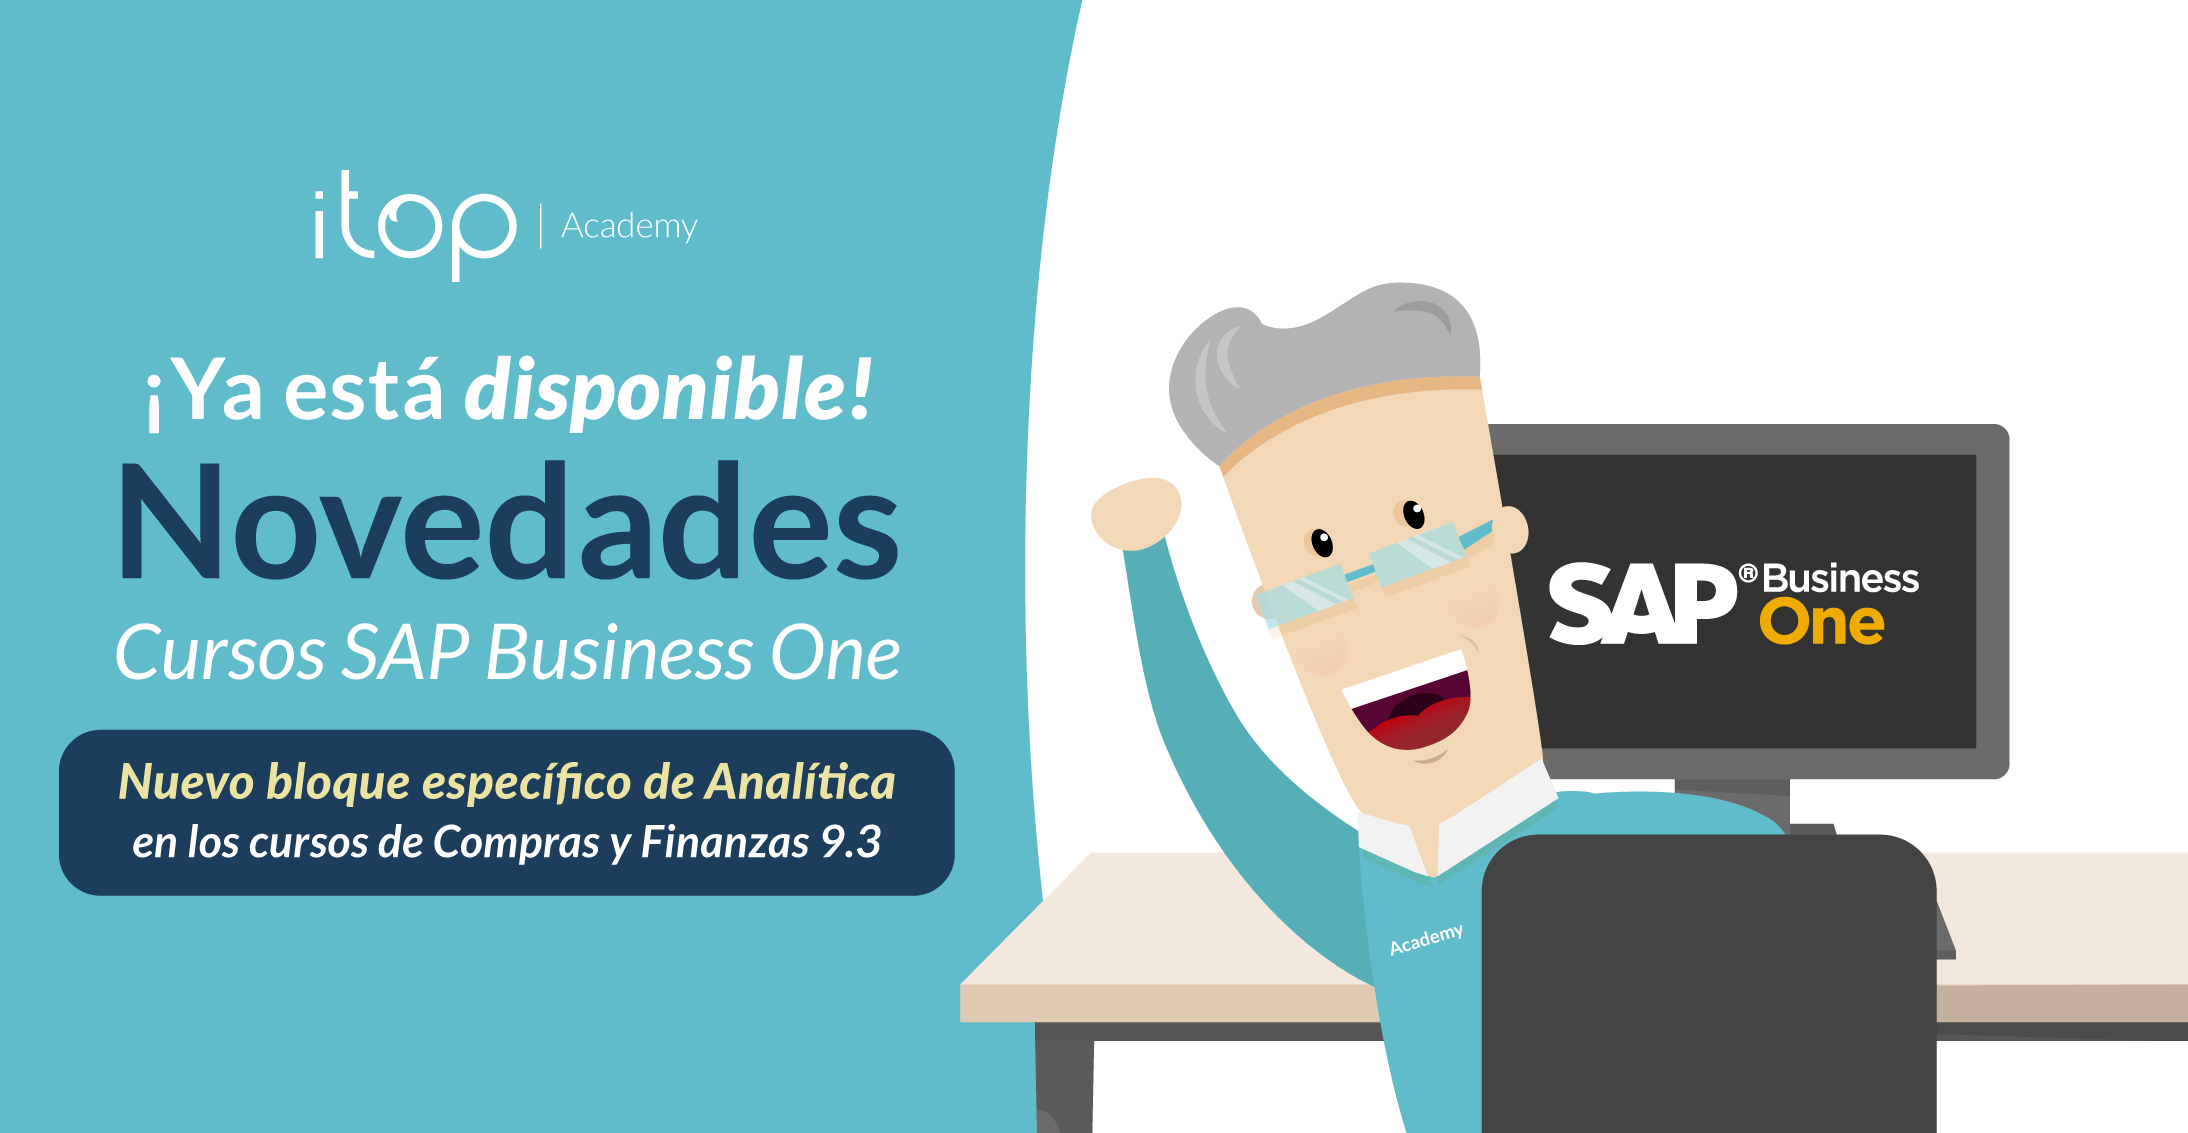 Nuevo Bloque de Analítica en los Cursos Online de SAP Business One